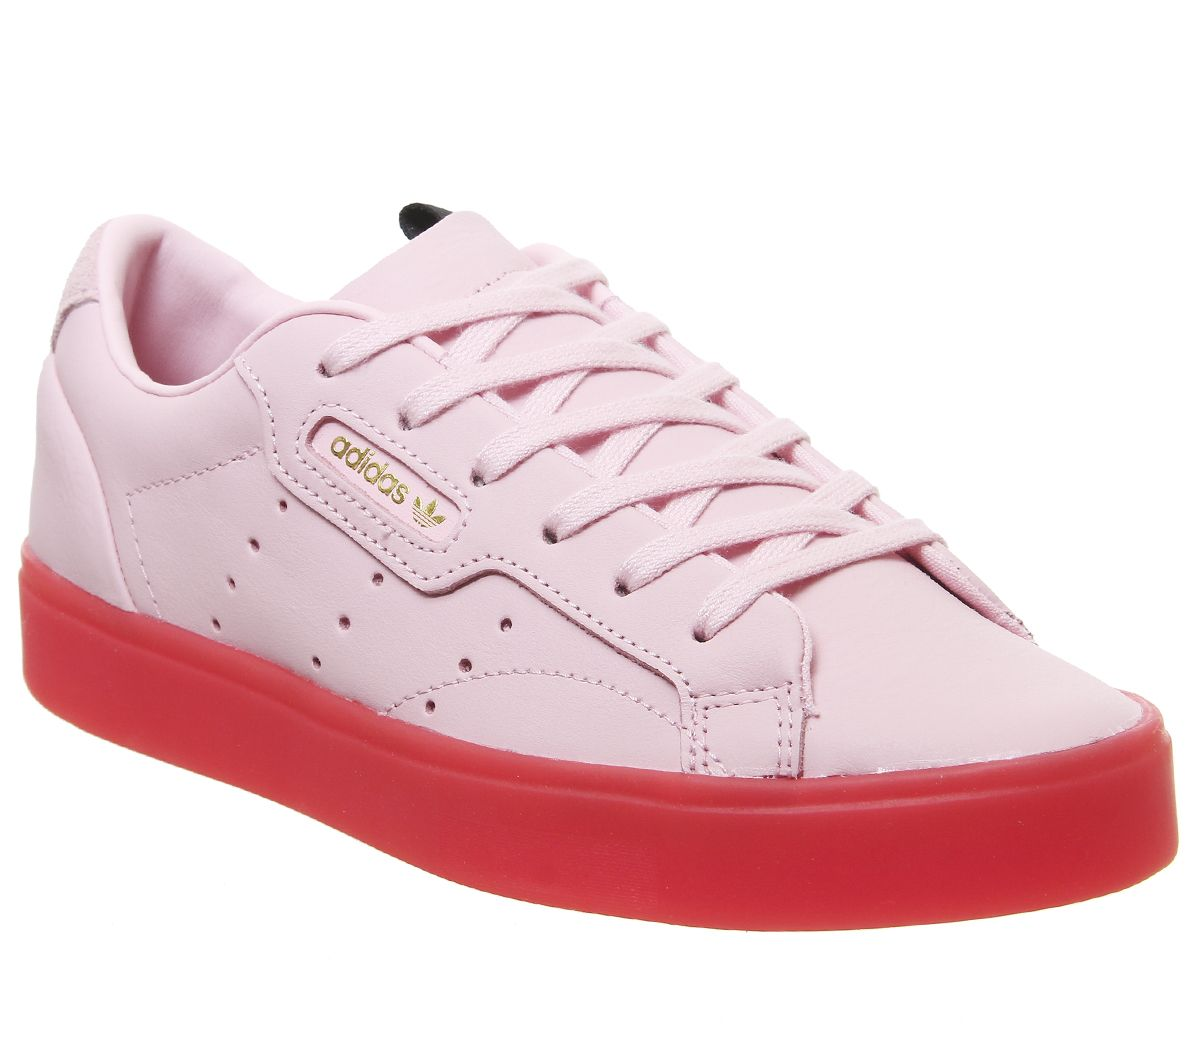 Details about Womens Adidas Sleek Trainers Diva Red Trainers Shoes